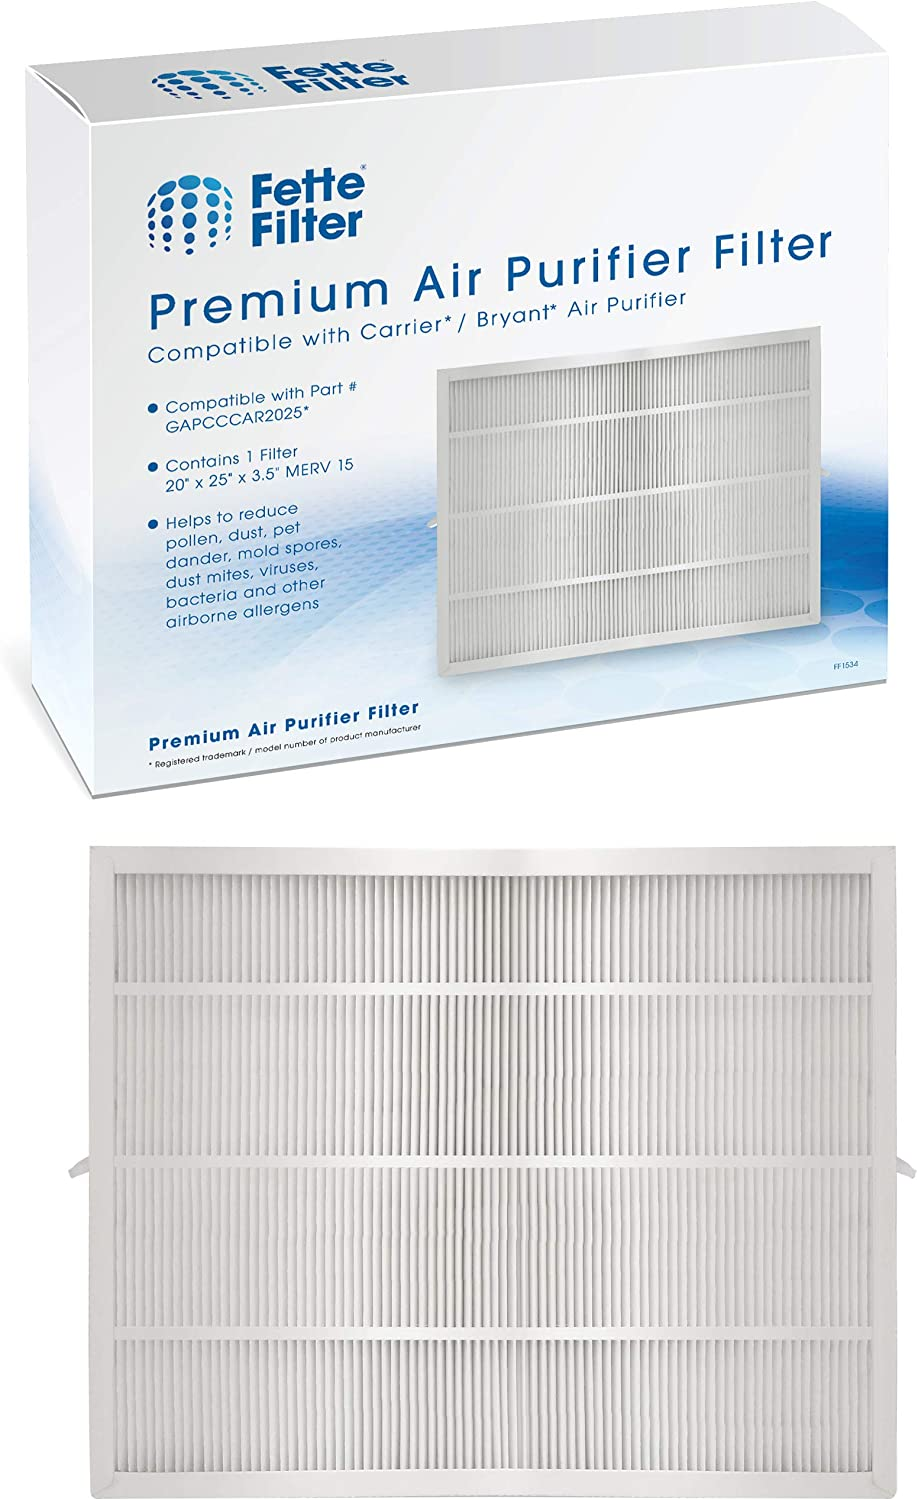 Fette Filter - Air Purifier Cartridge Filter Compatible with Bryant/Carrier (20